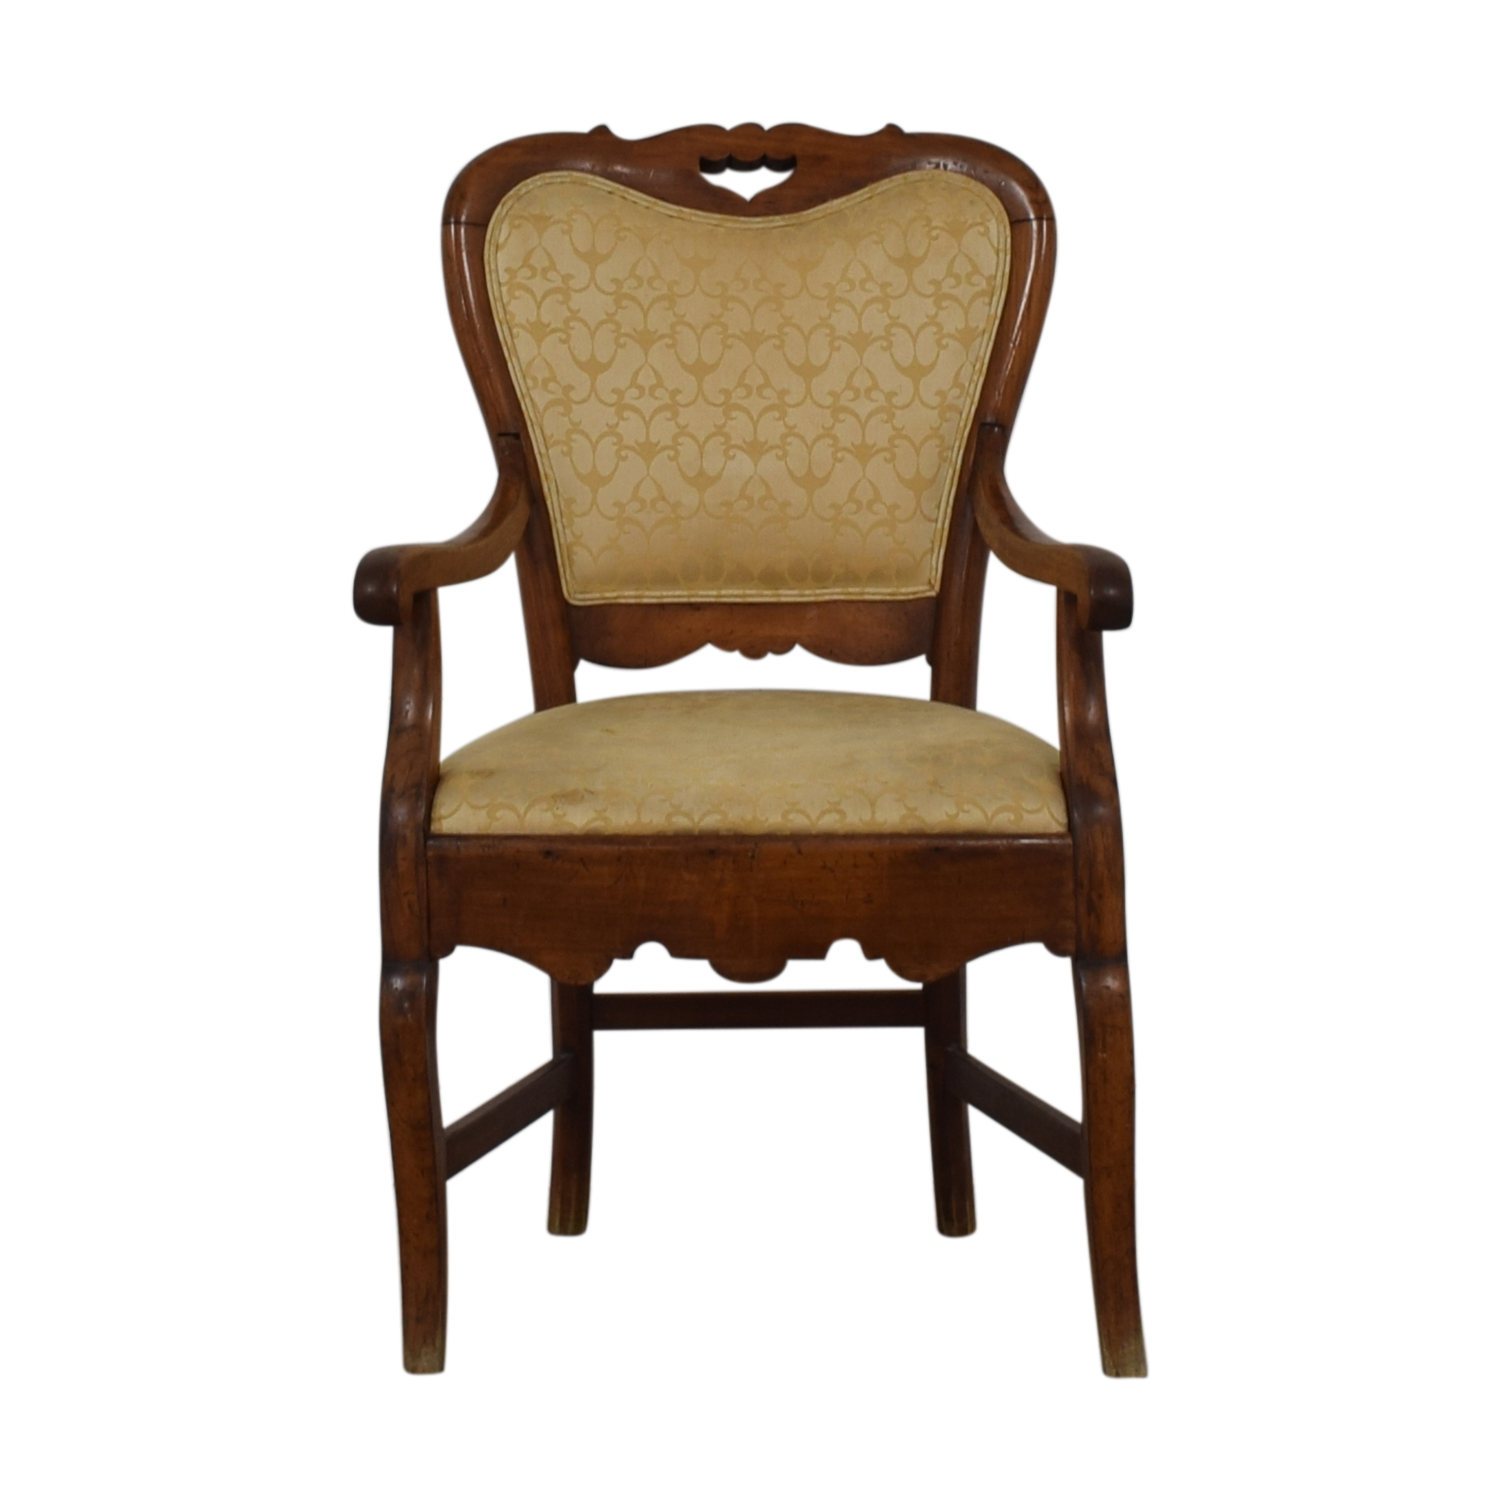 Arm Chairs 78 Off Yellow French Arm Chair Chairs